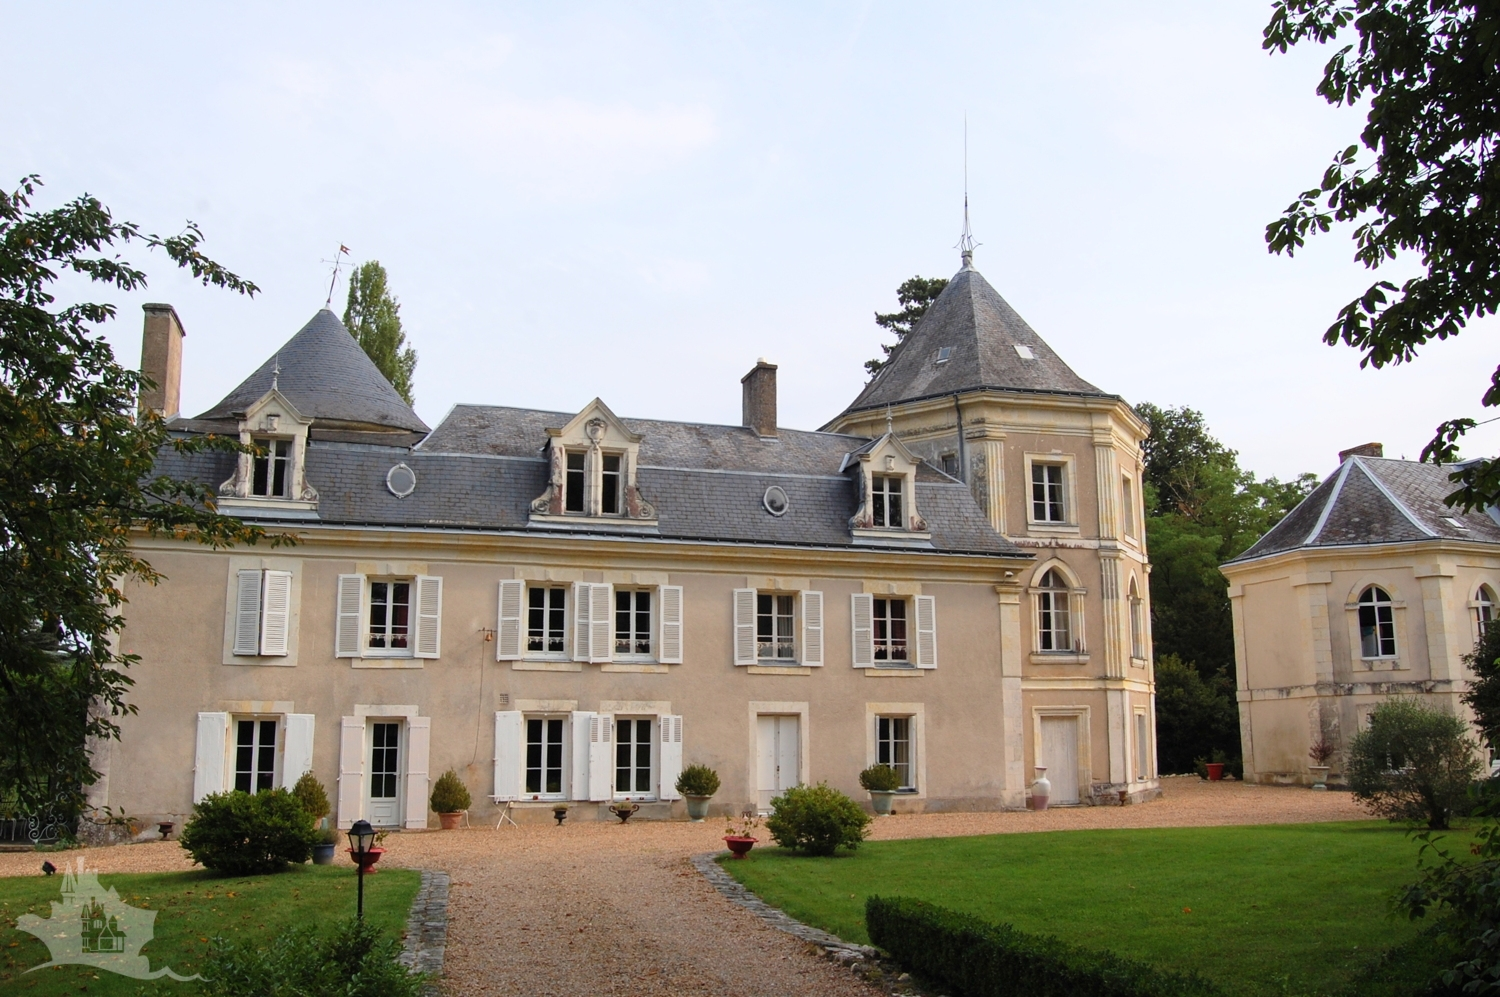 NLEN005009 – Touraine XV chateau and logis on 12 acres